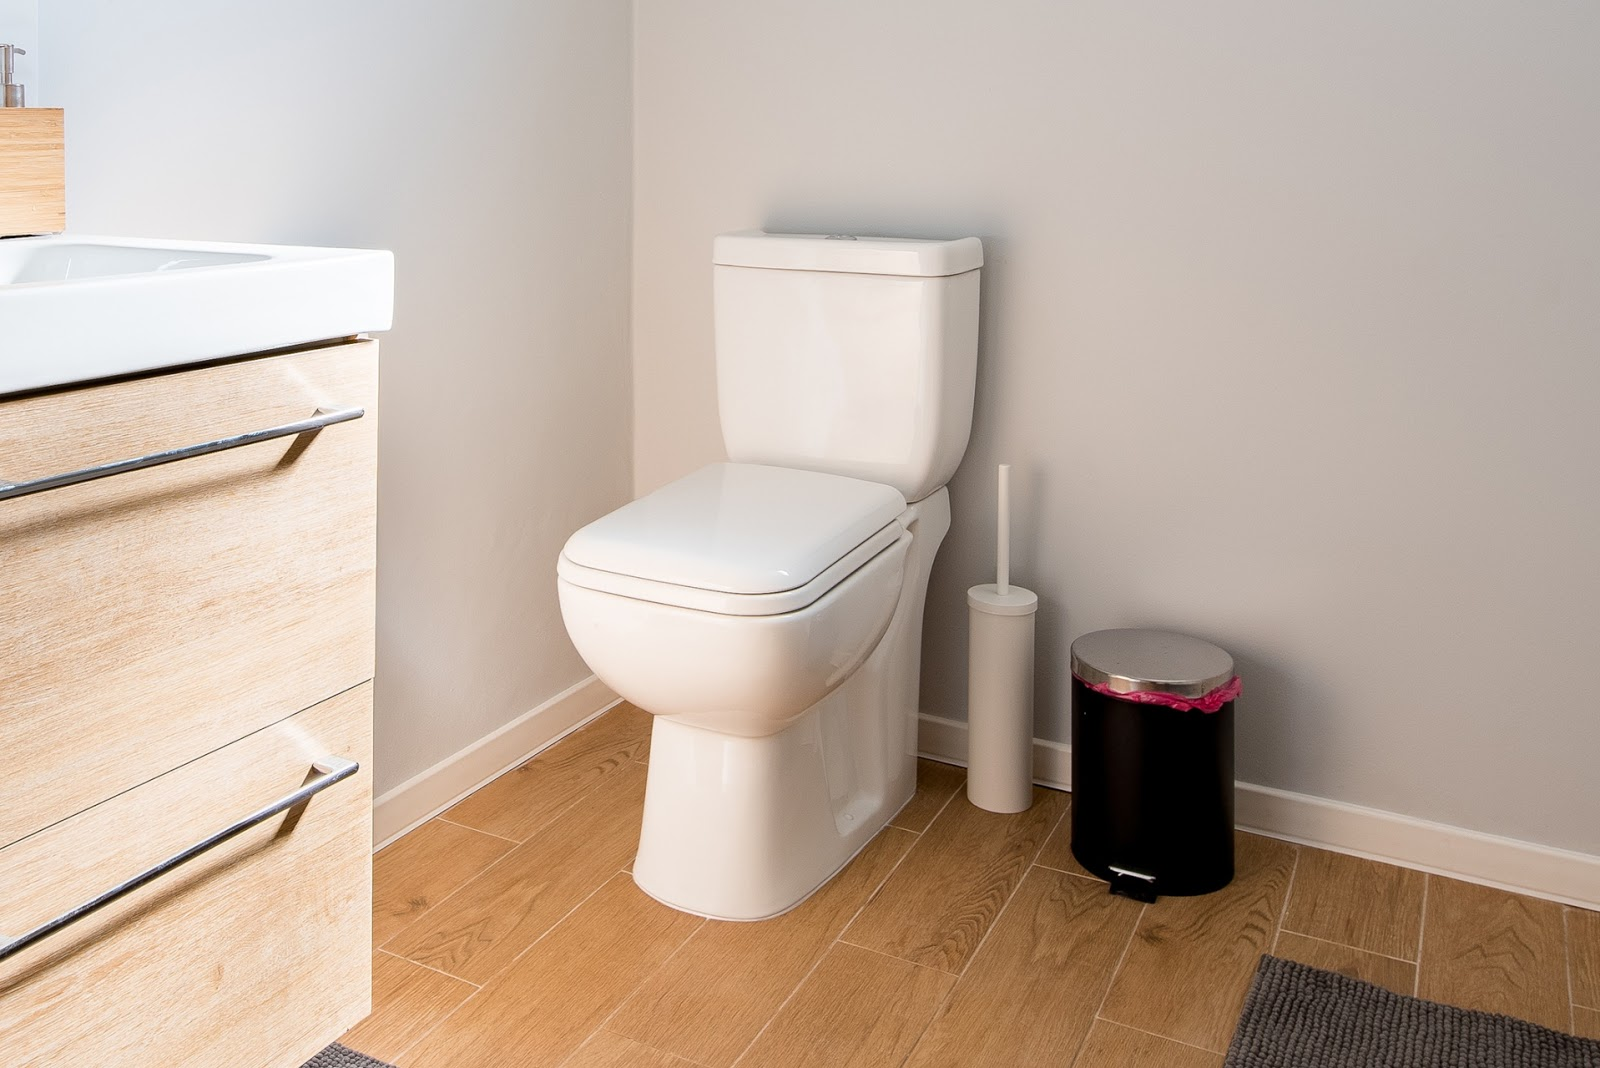 Running and leaking toilet plumber in Hamilton